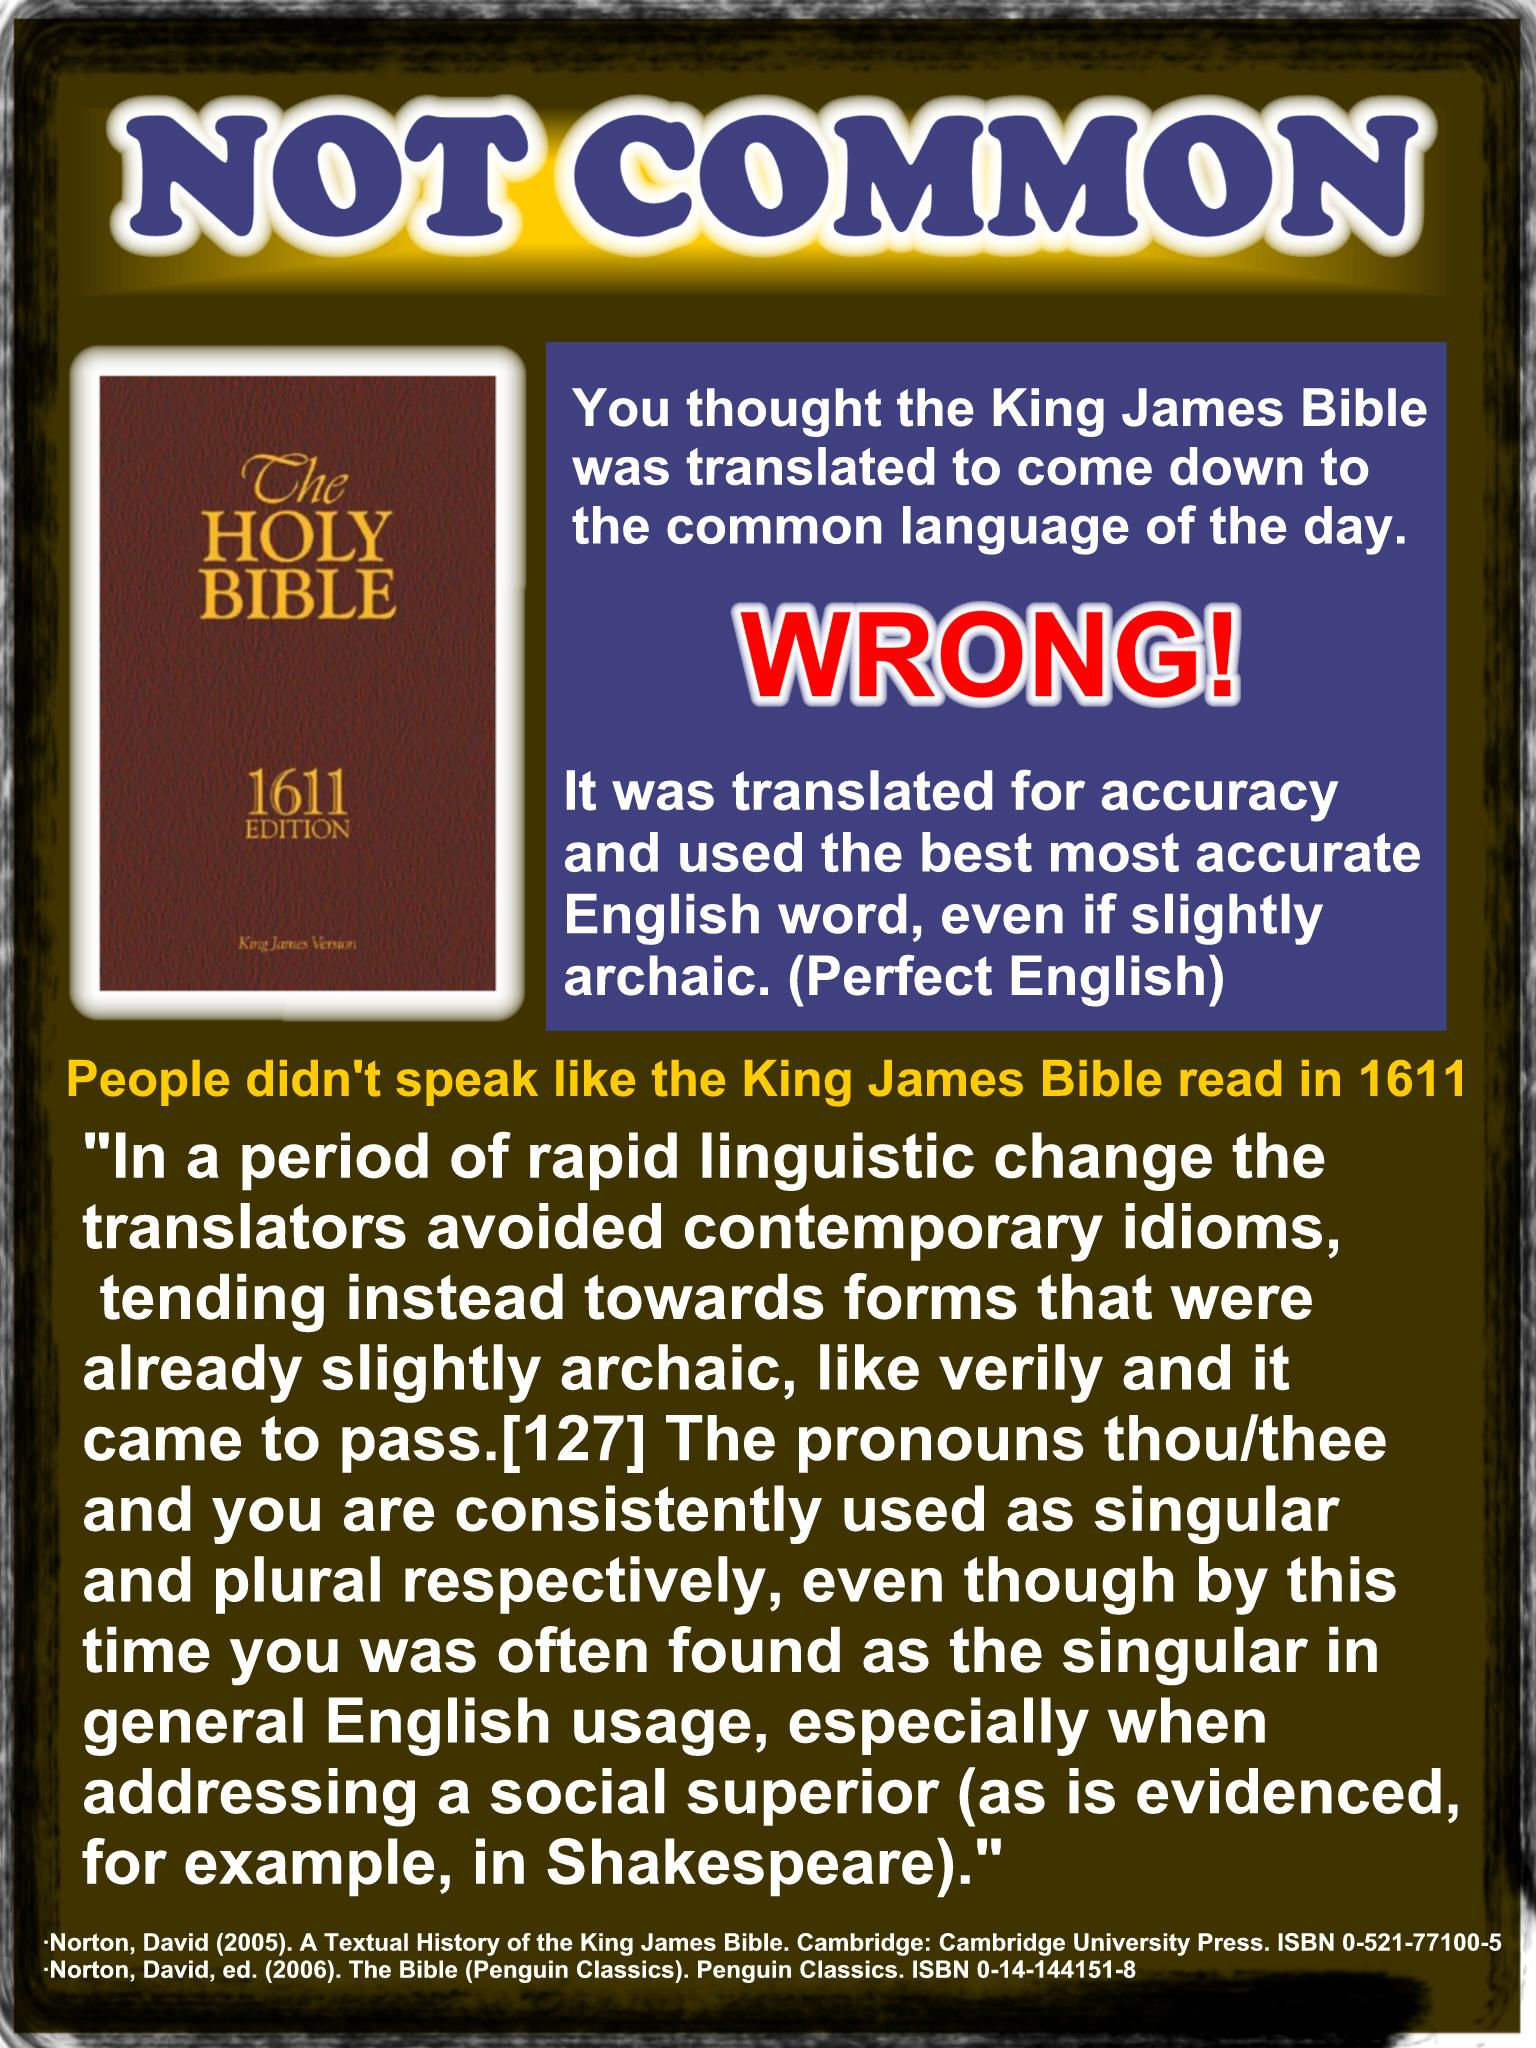 There is nothing Common about the King James Bible! It was